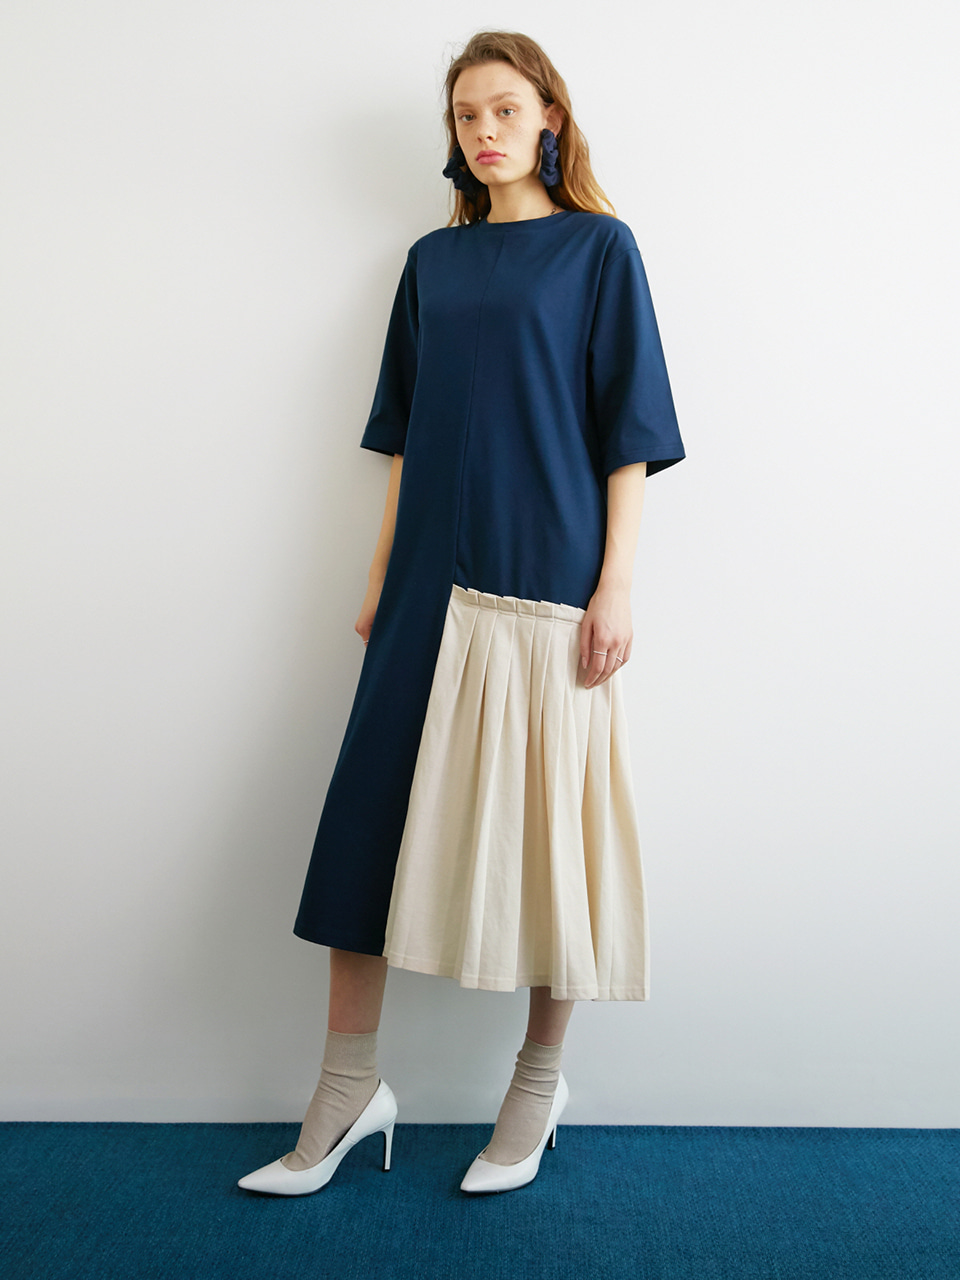 COMPOSURE DRESS_NAVY